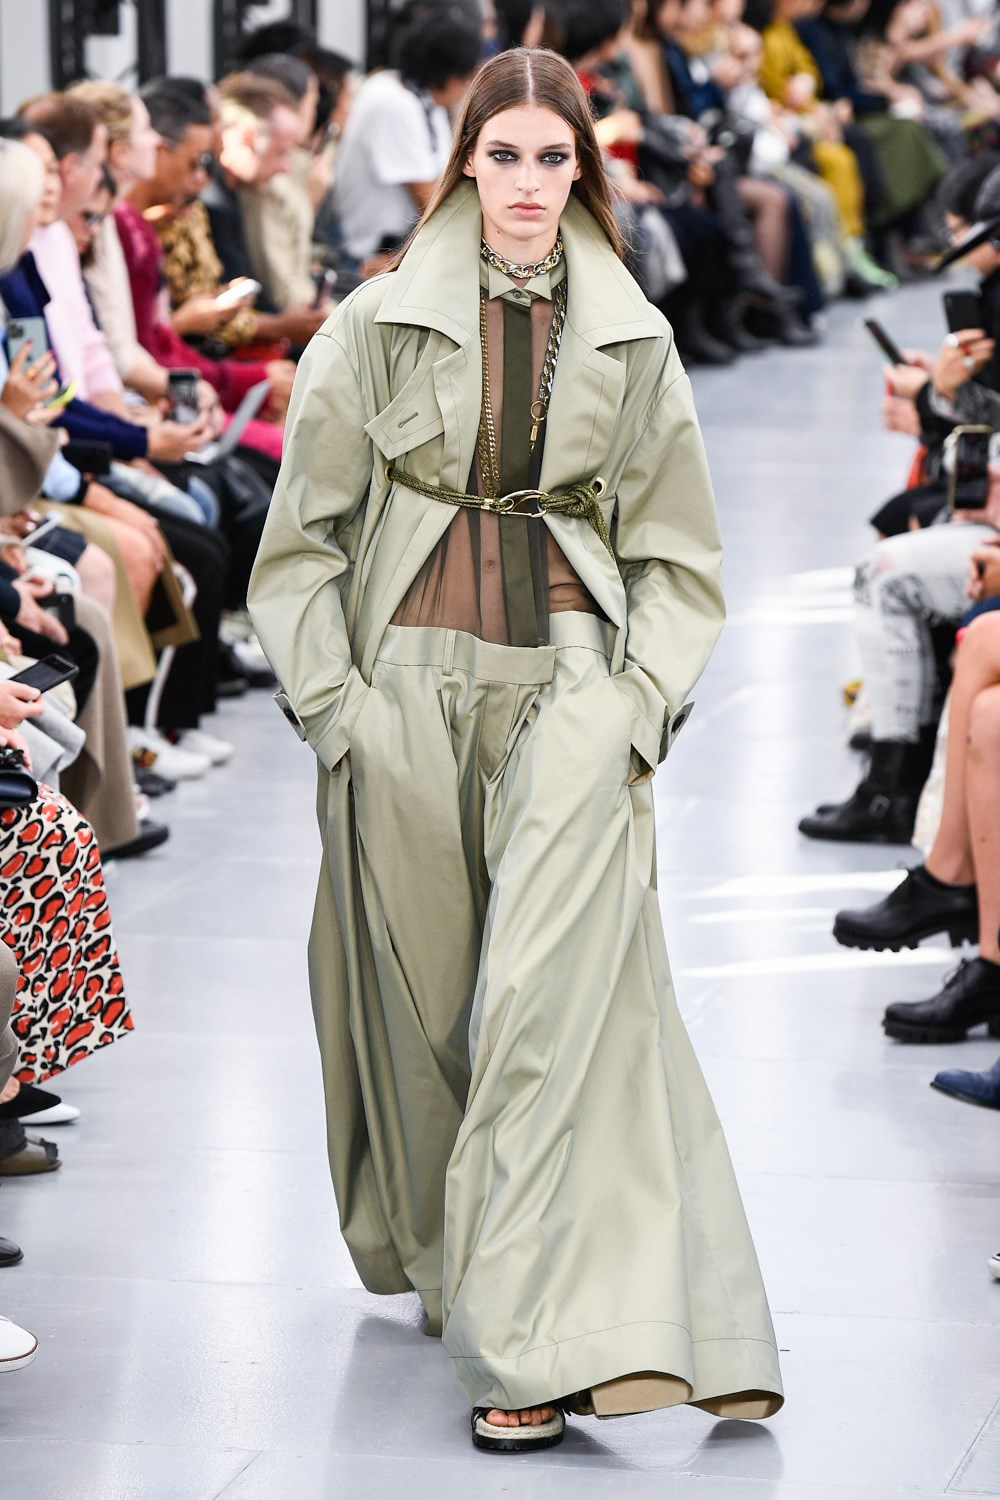 Trenchcoat Spring 2020 RTW Fashion Trend